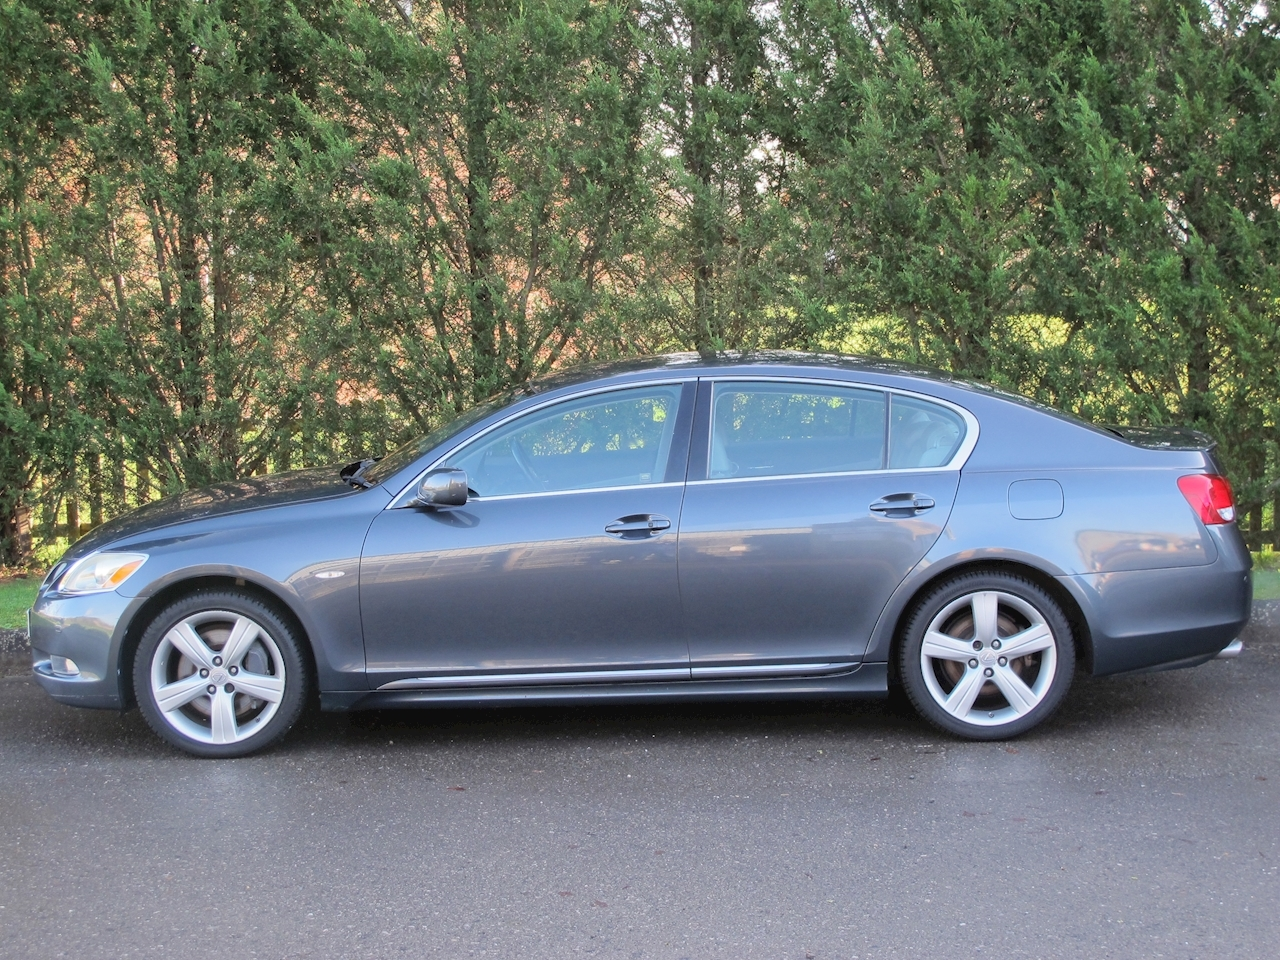 Lexus Gs 300 Limited Edition Saloon 3.0 Automatic Petrol